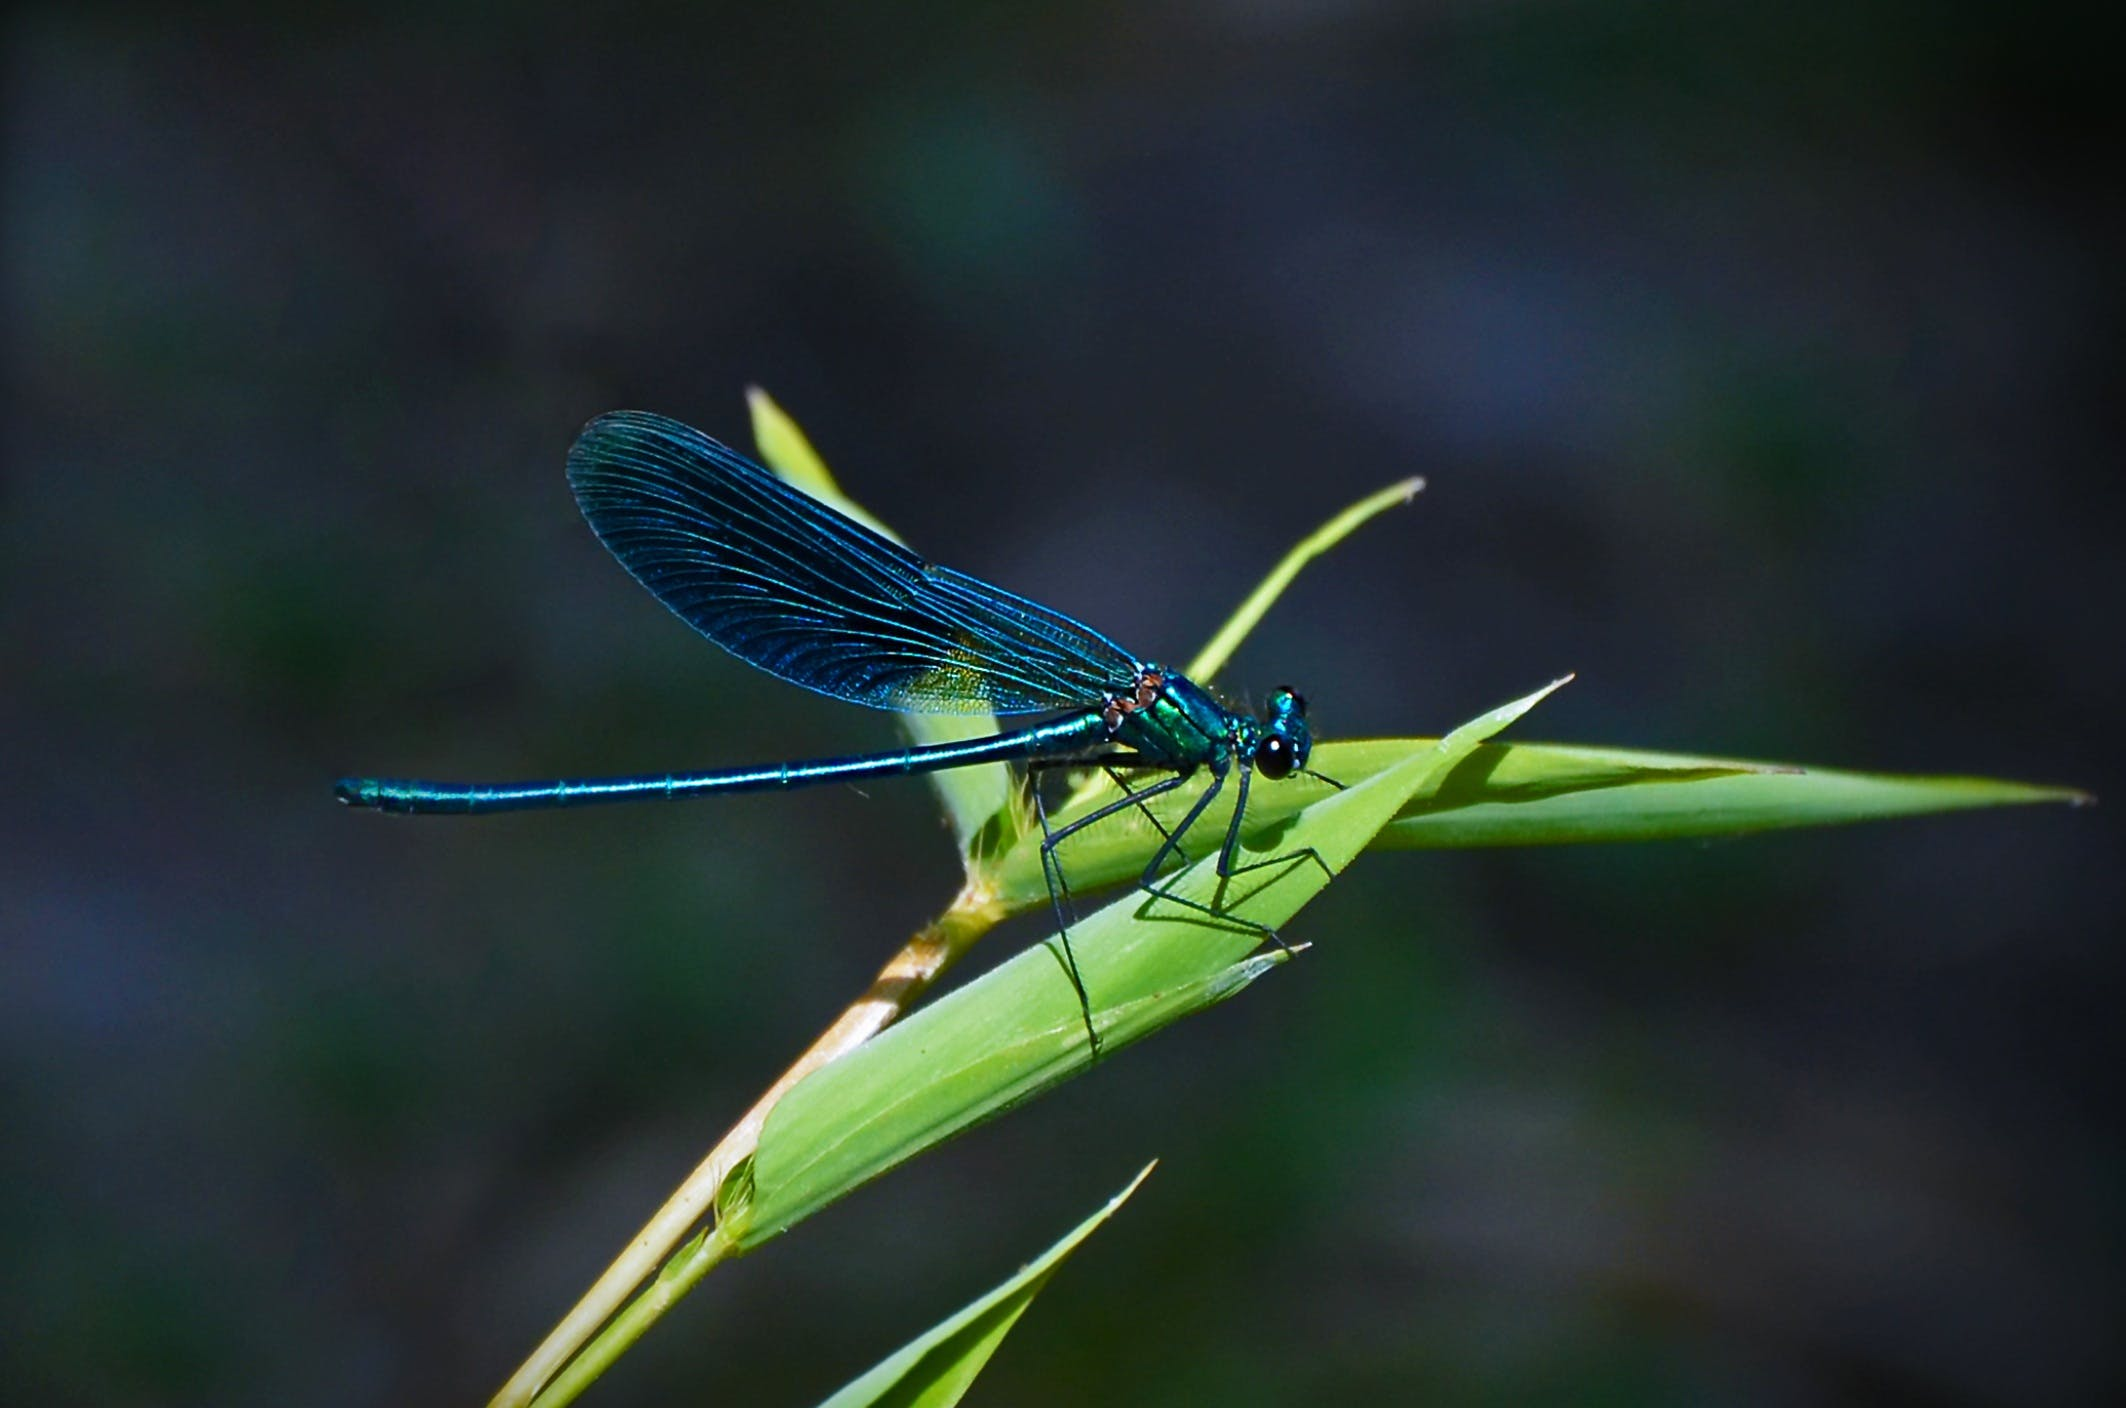 Teal Dragonfly on a Green Leafed Plant during Daytime